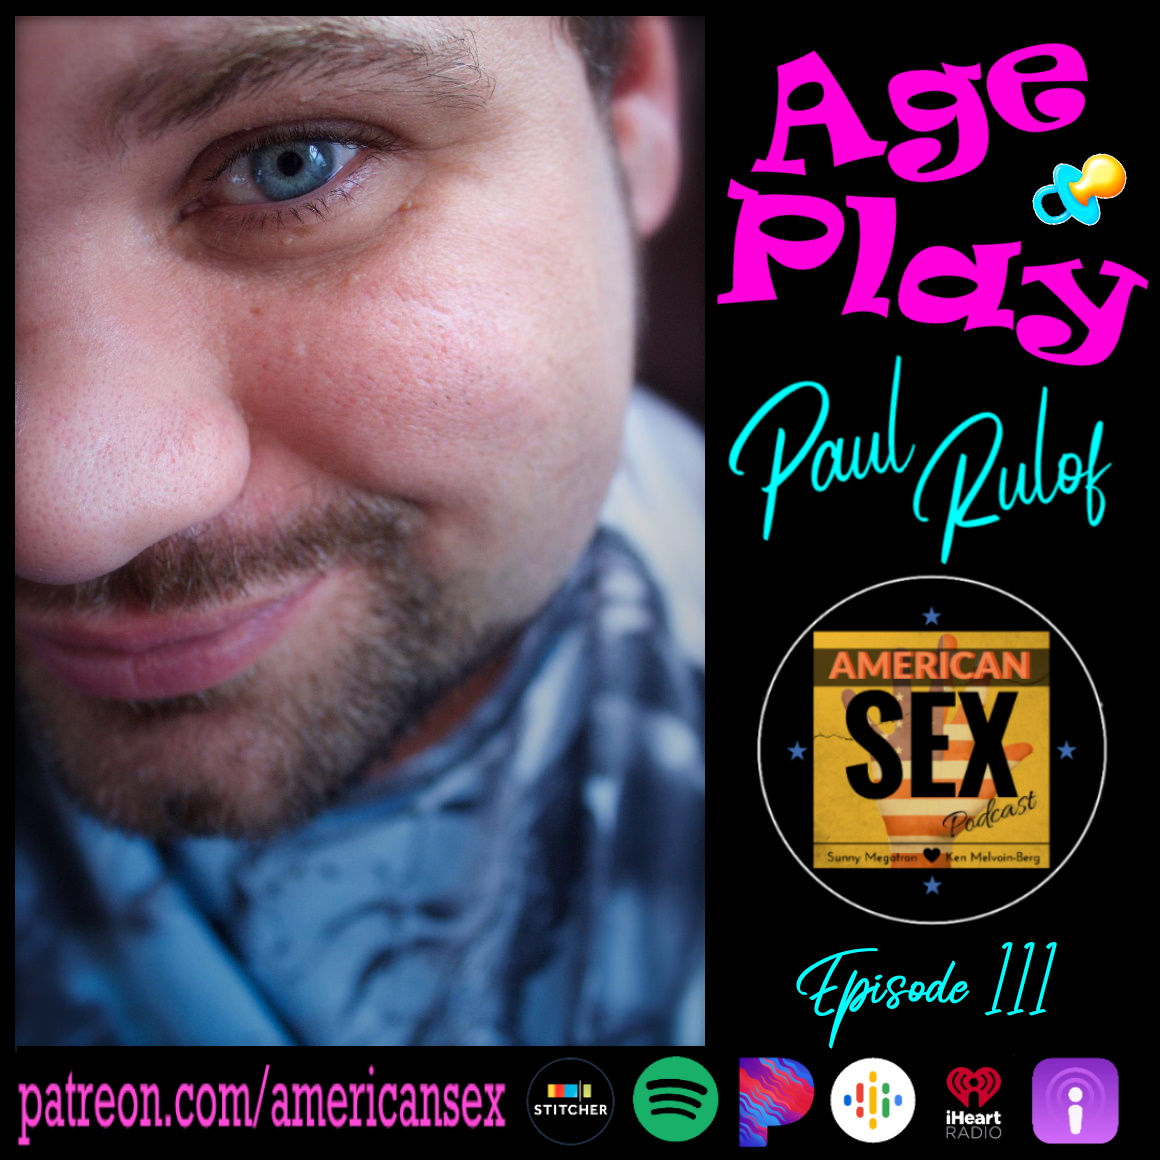 Amerikan Sex age play with paul rulof - ep 111 american sex podcast